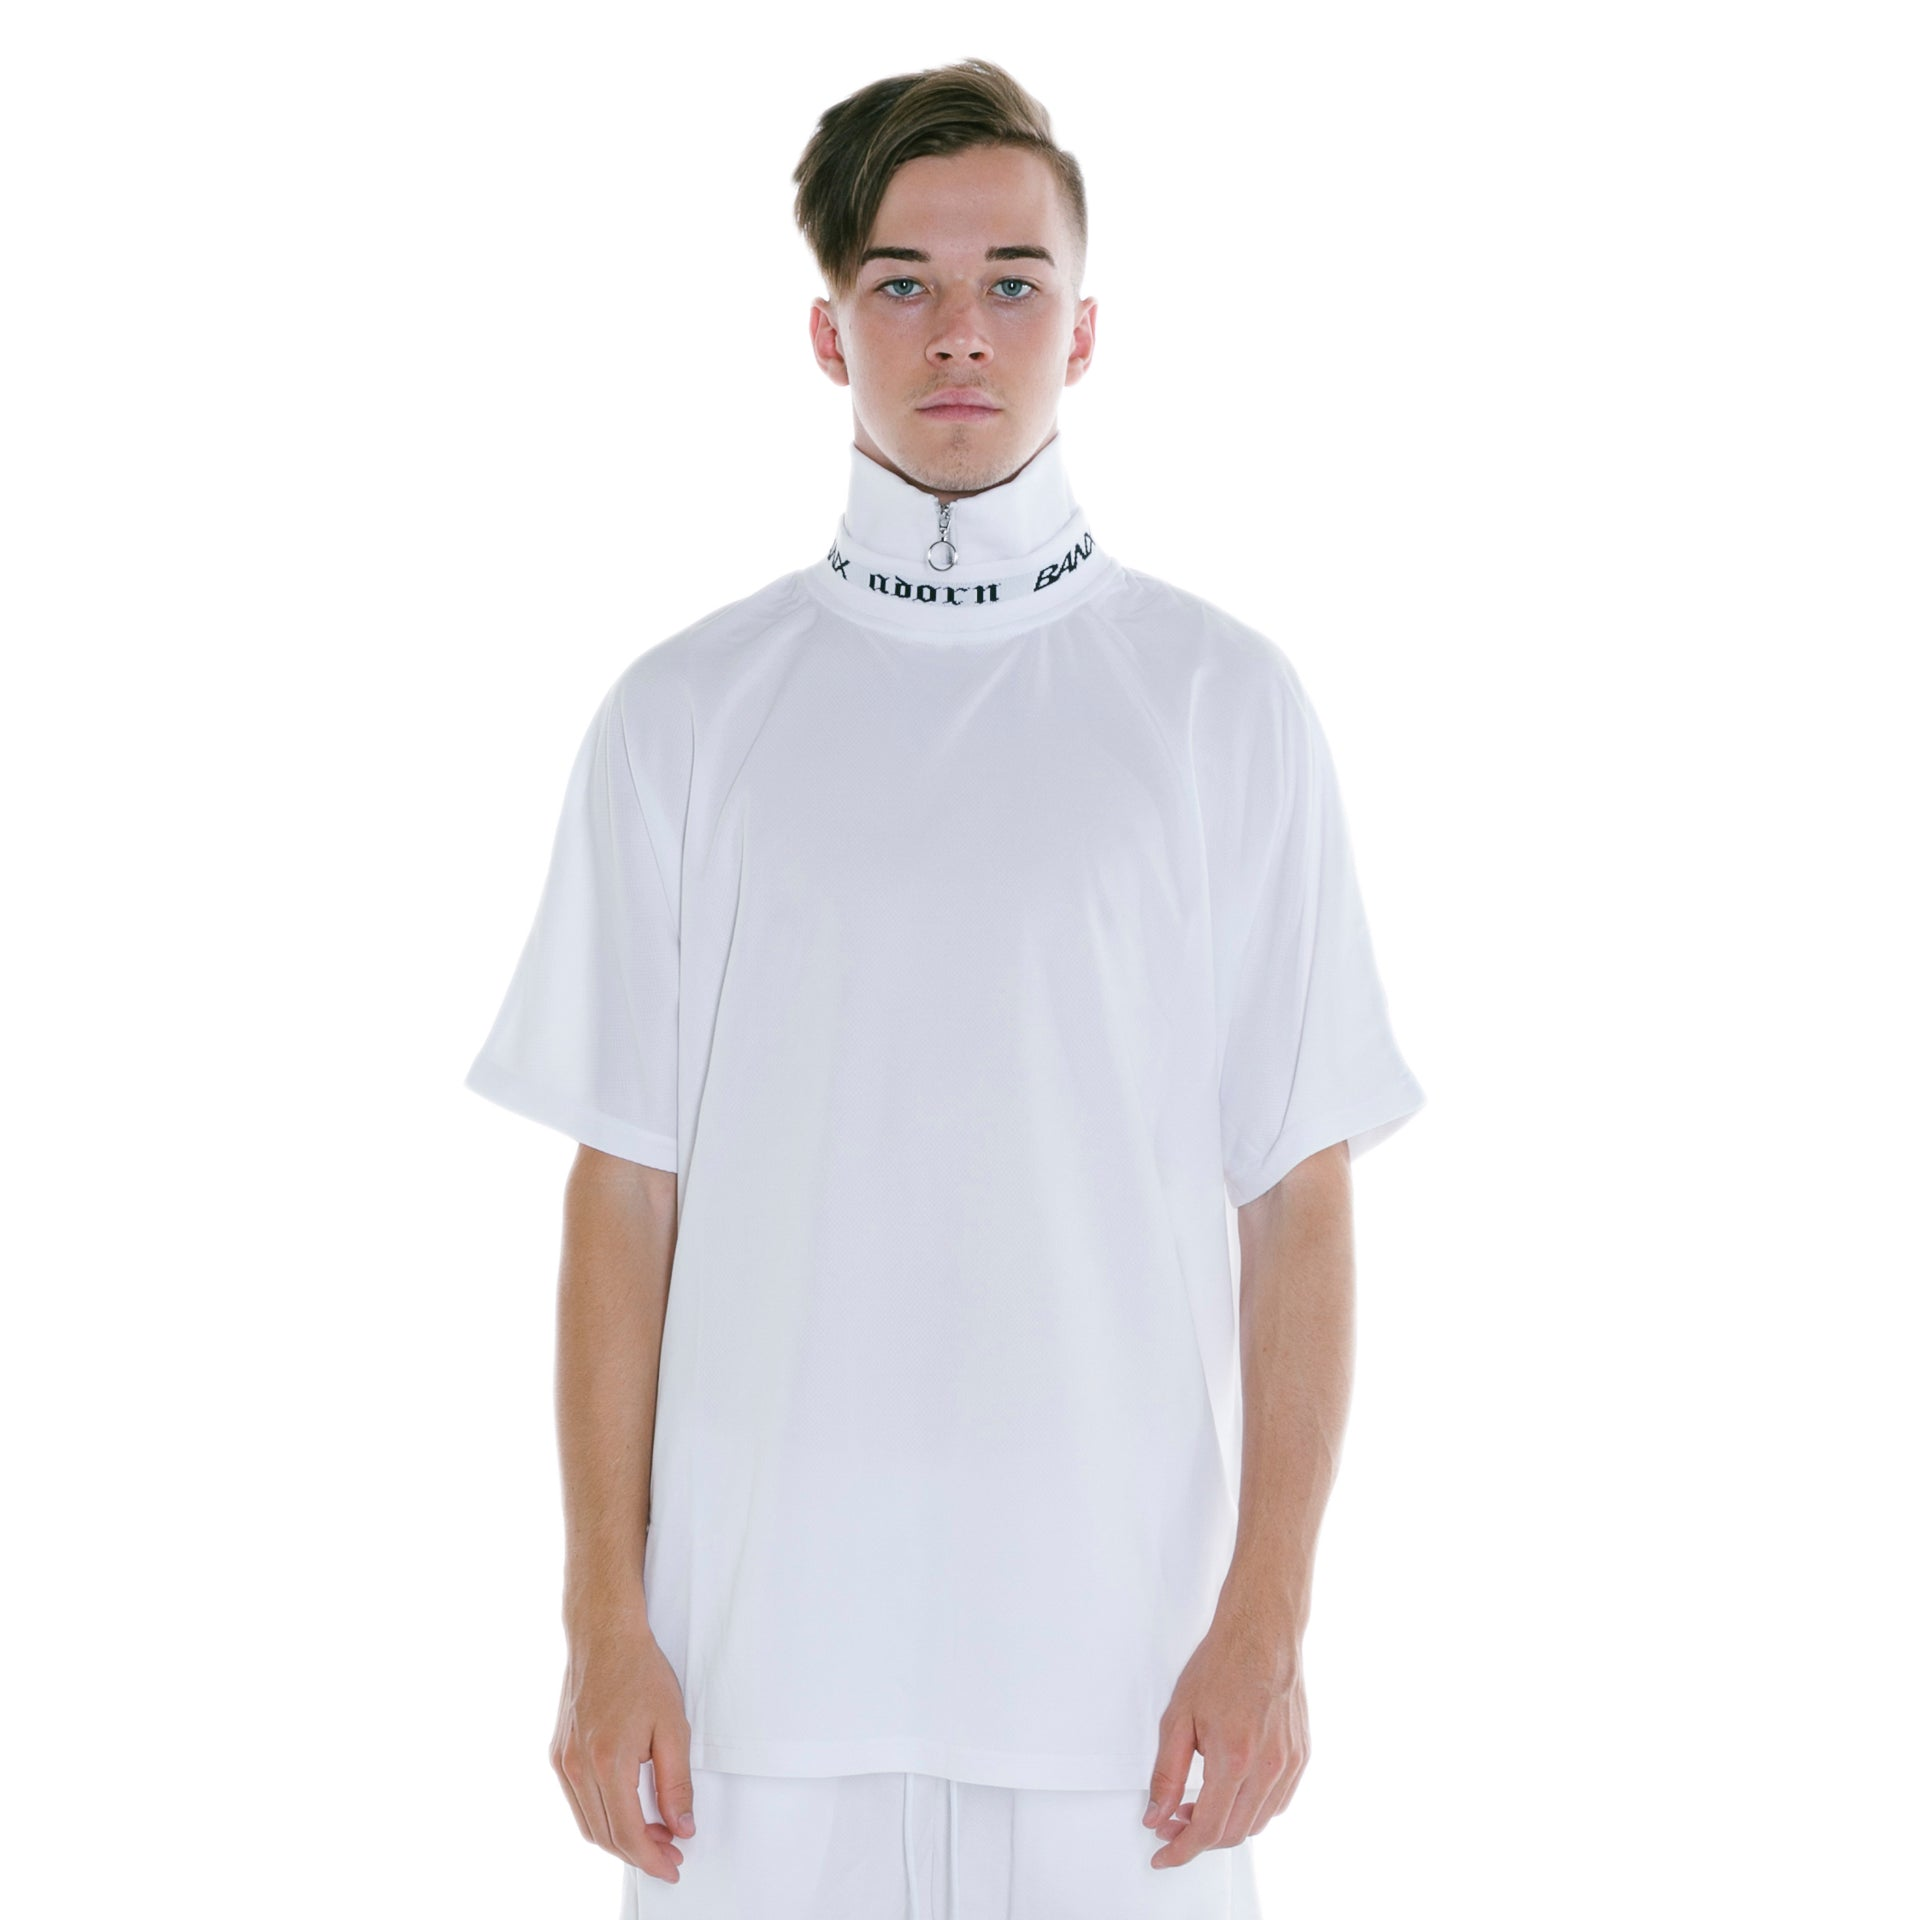 ADORN X BANX SHIRT WHITE - WITH COLLAR